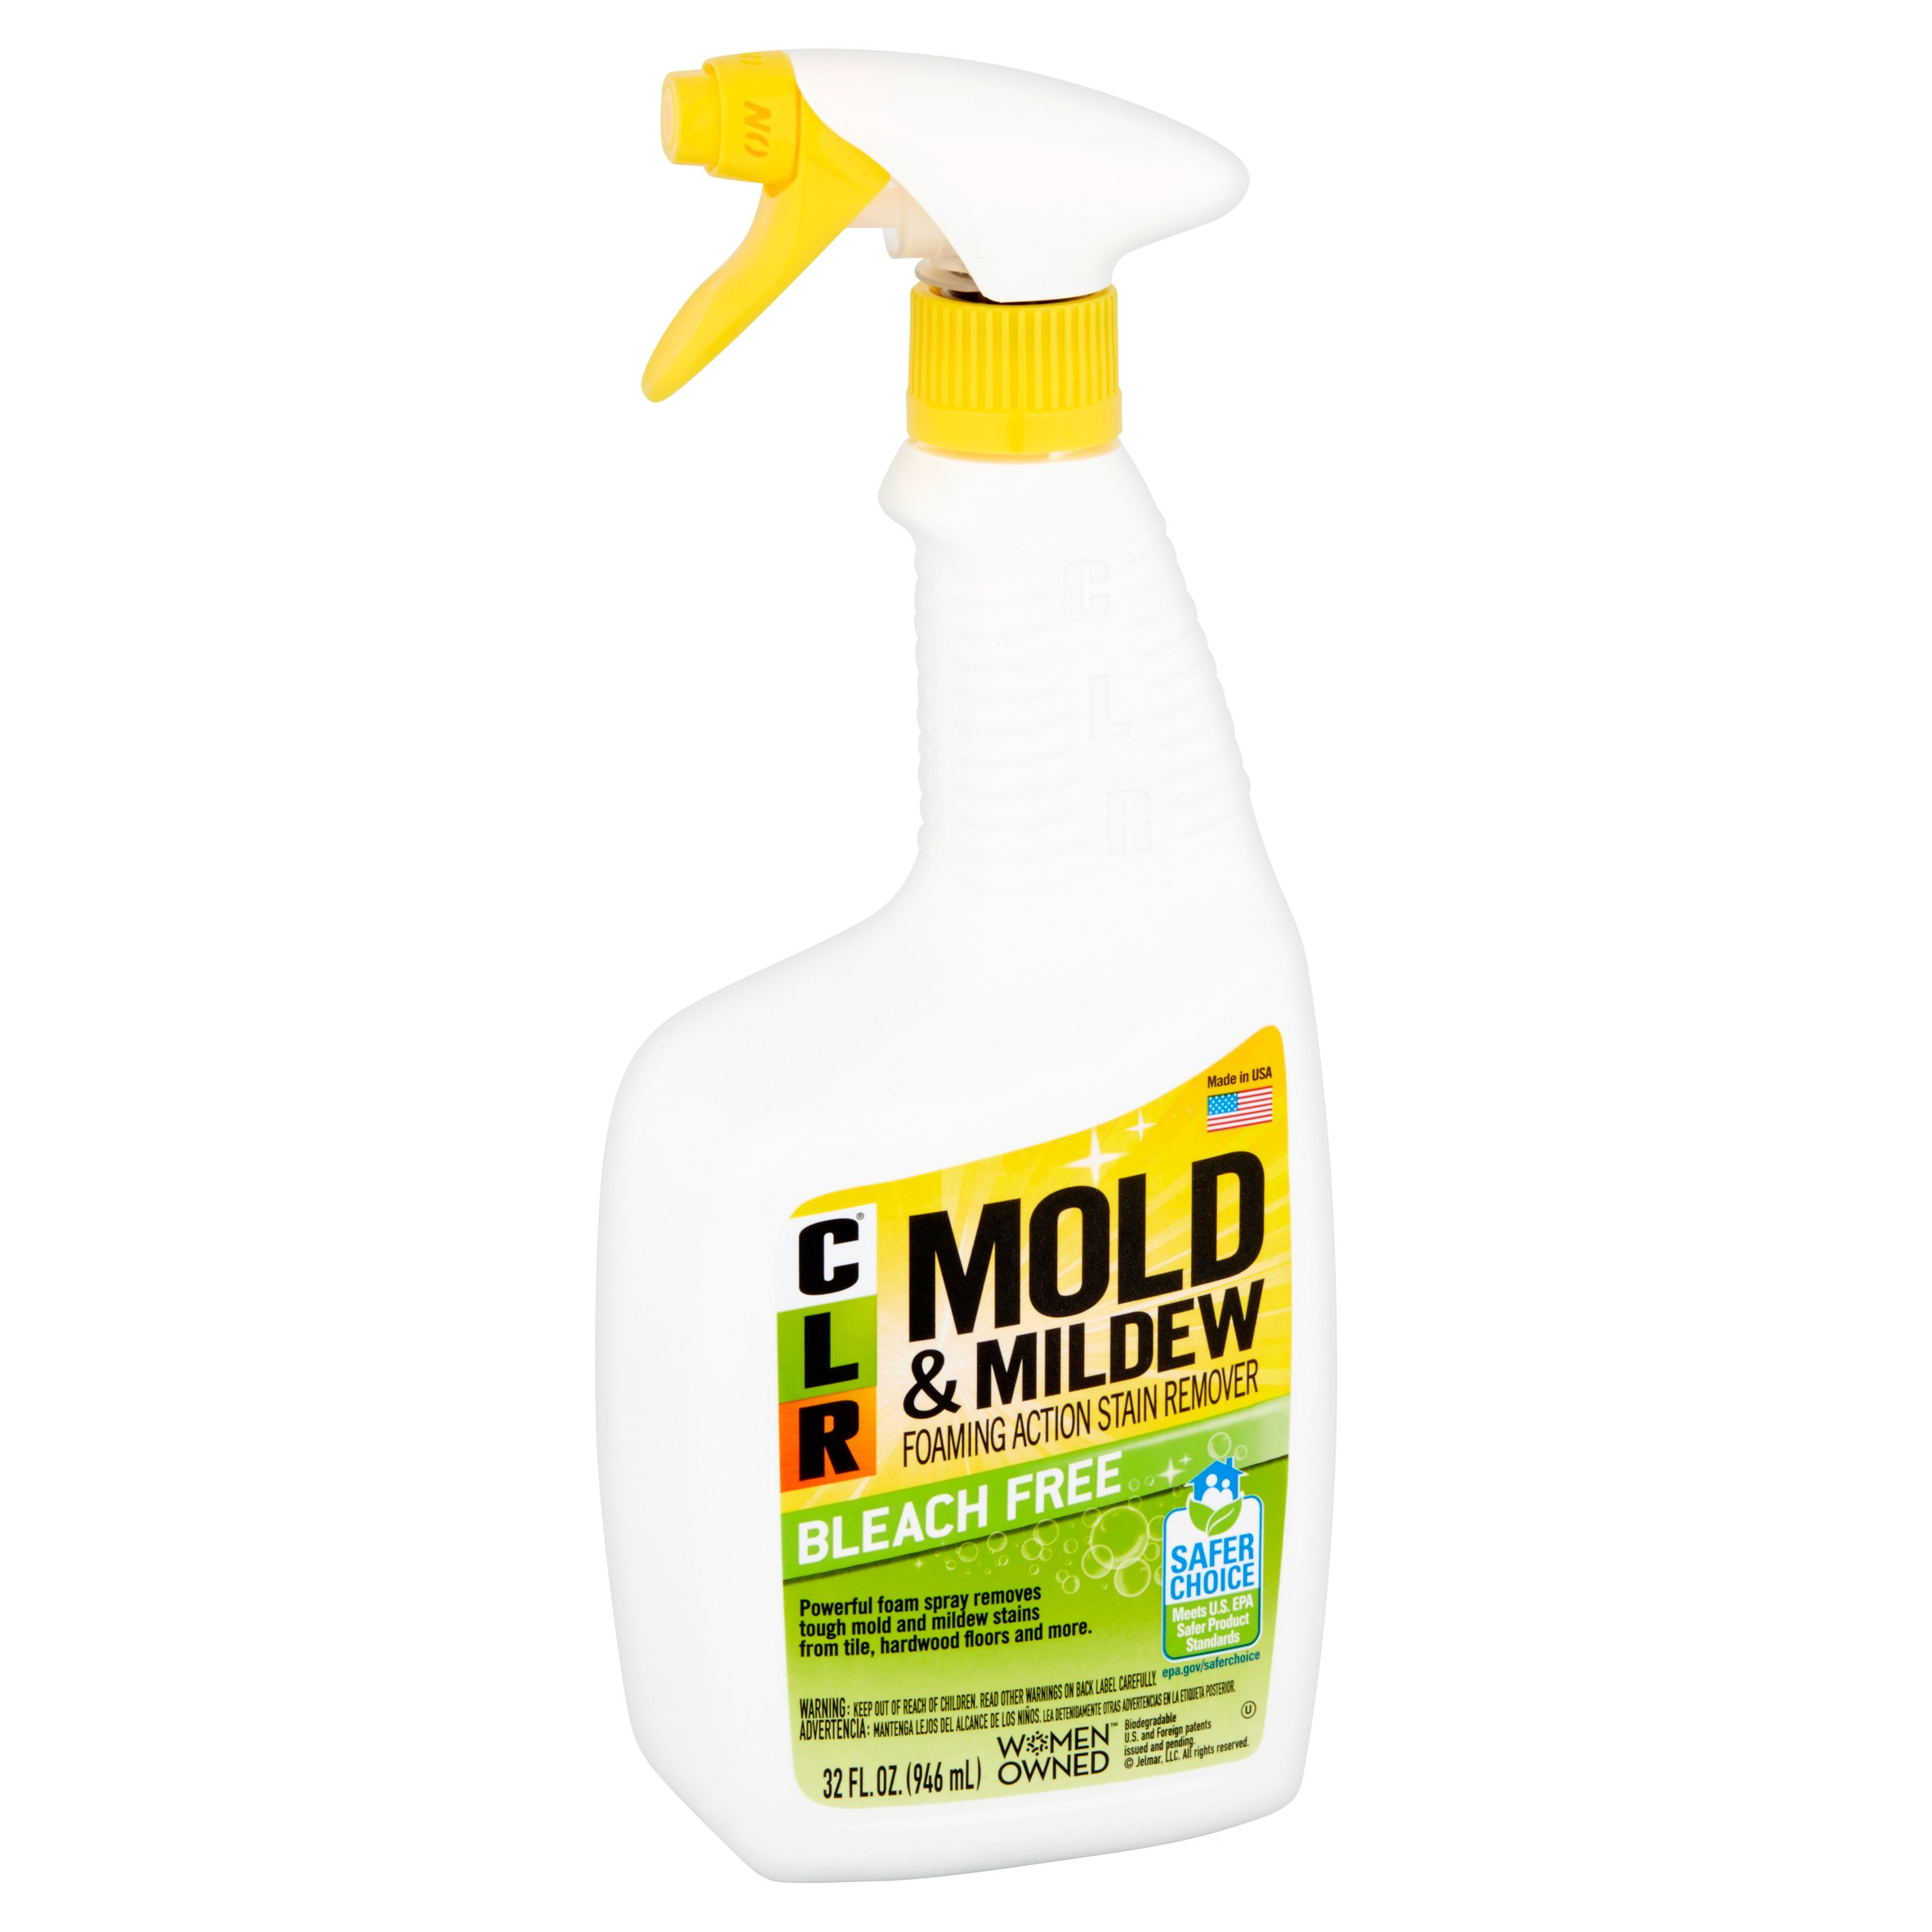 CLR Bleach-Free Mold & Mildew Spray Foaming Stain Remover, 32 Oz